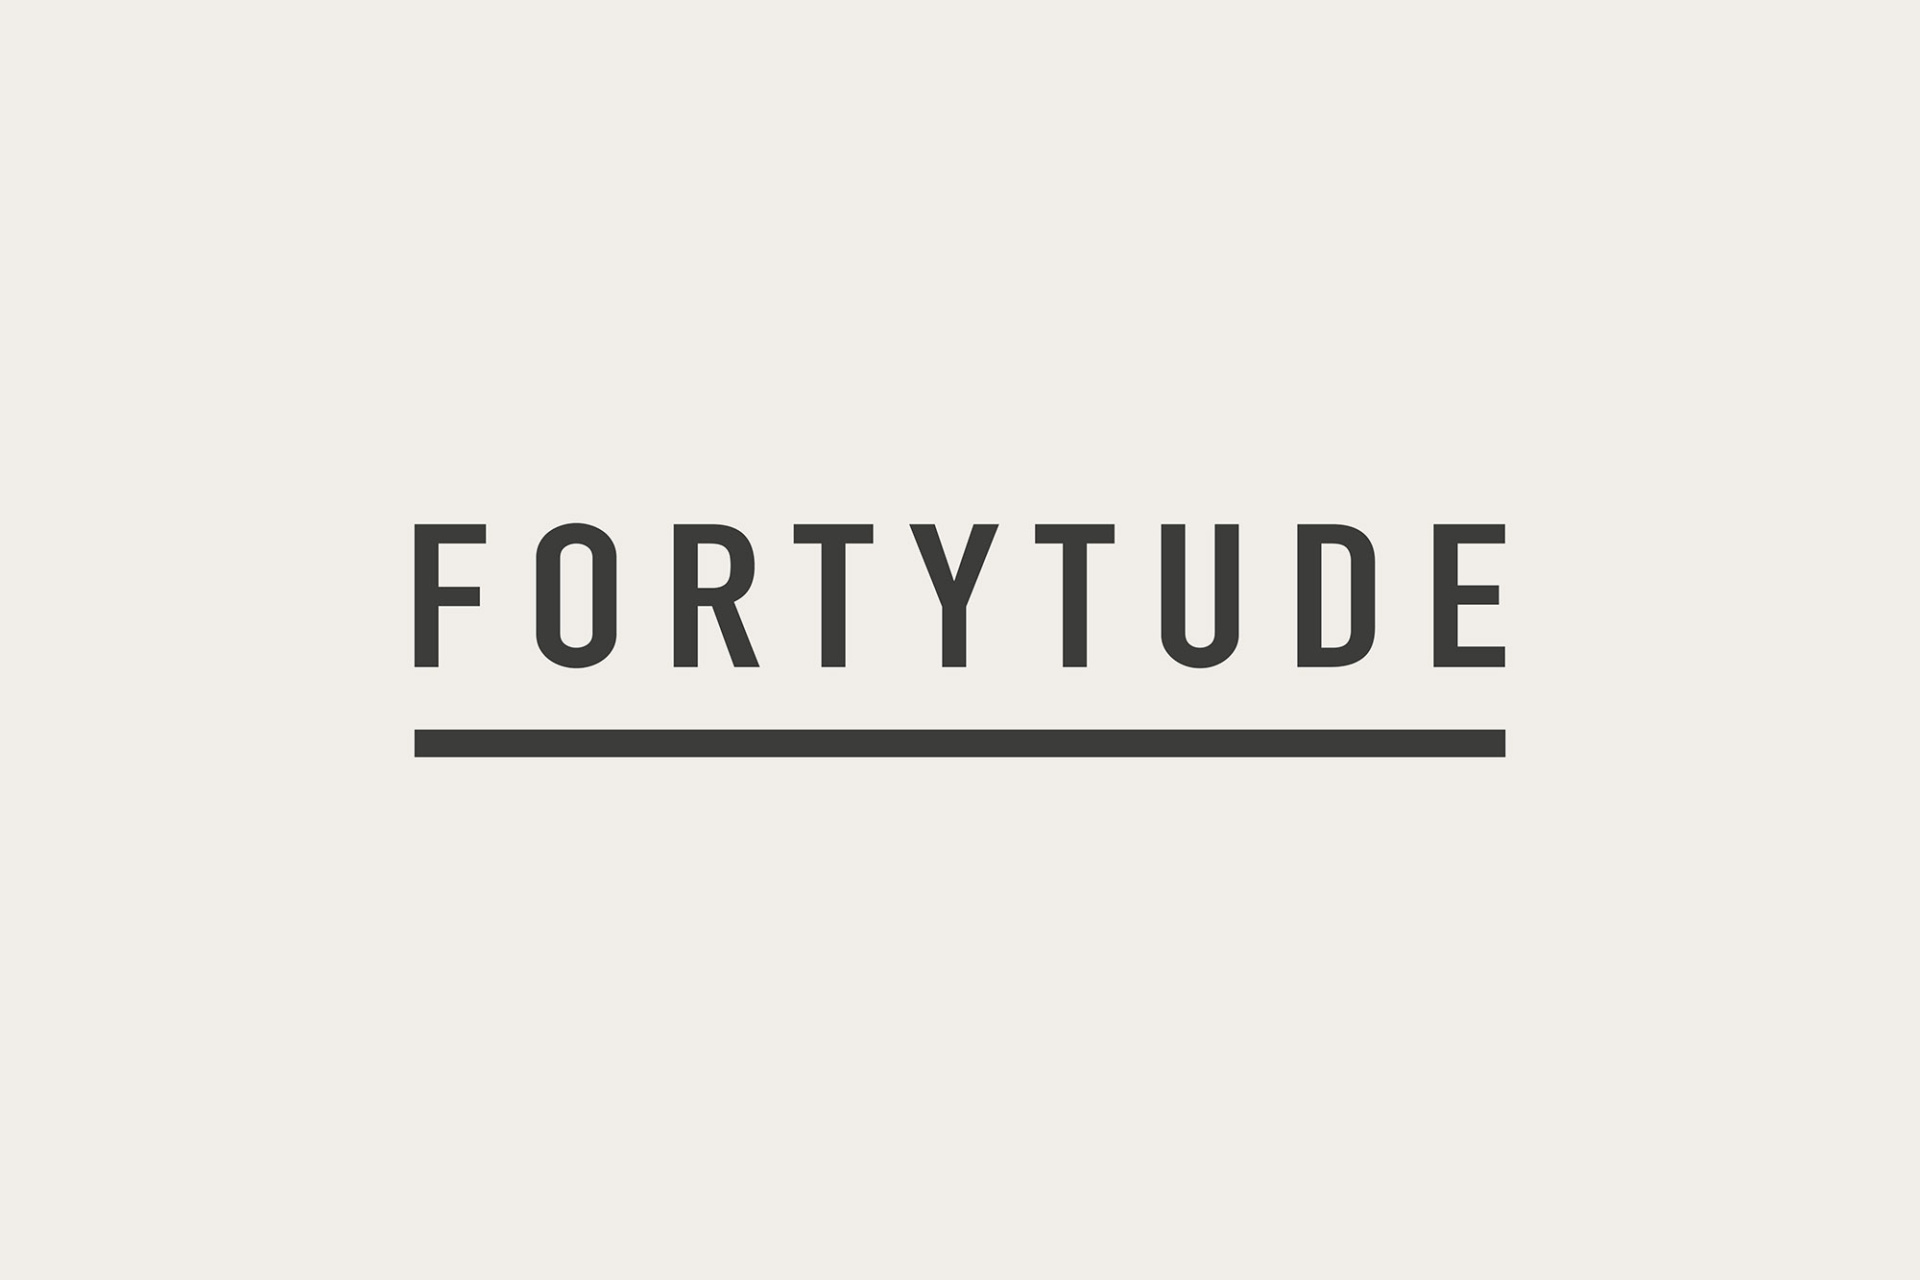 Fortytude logo. Clean and simple all cap text, underlined. Graphic design produced by Barefaced Studios, design agency based in Islington, North London.